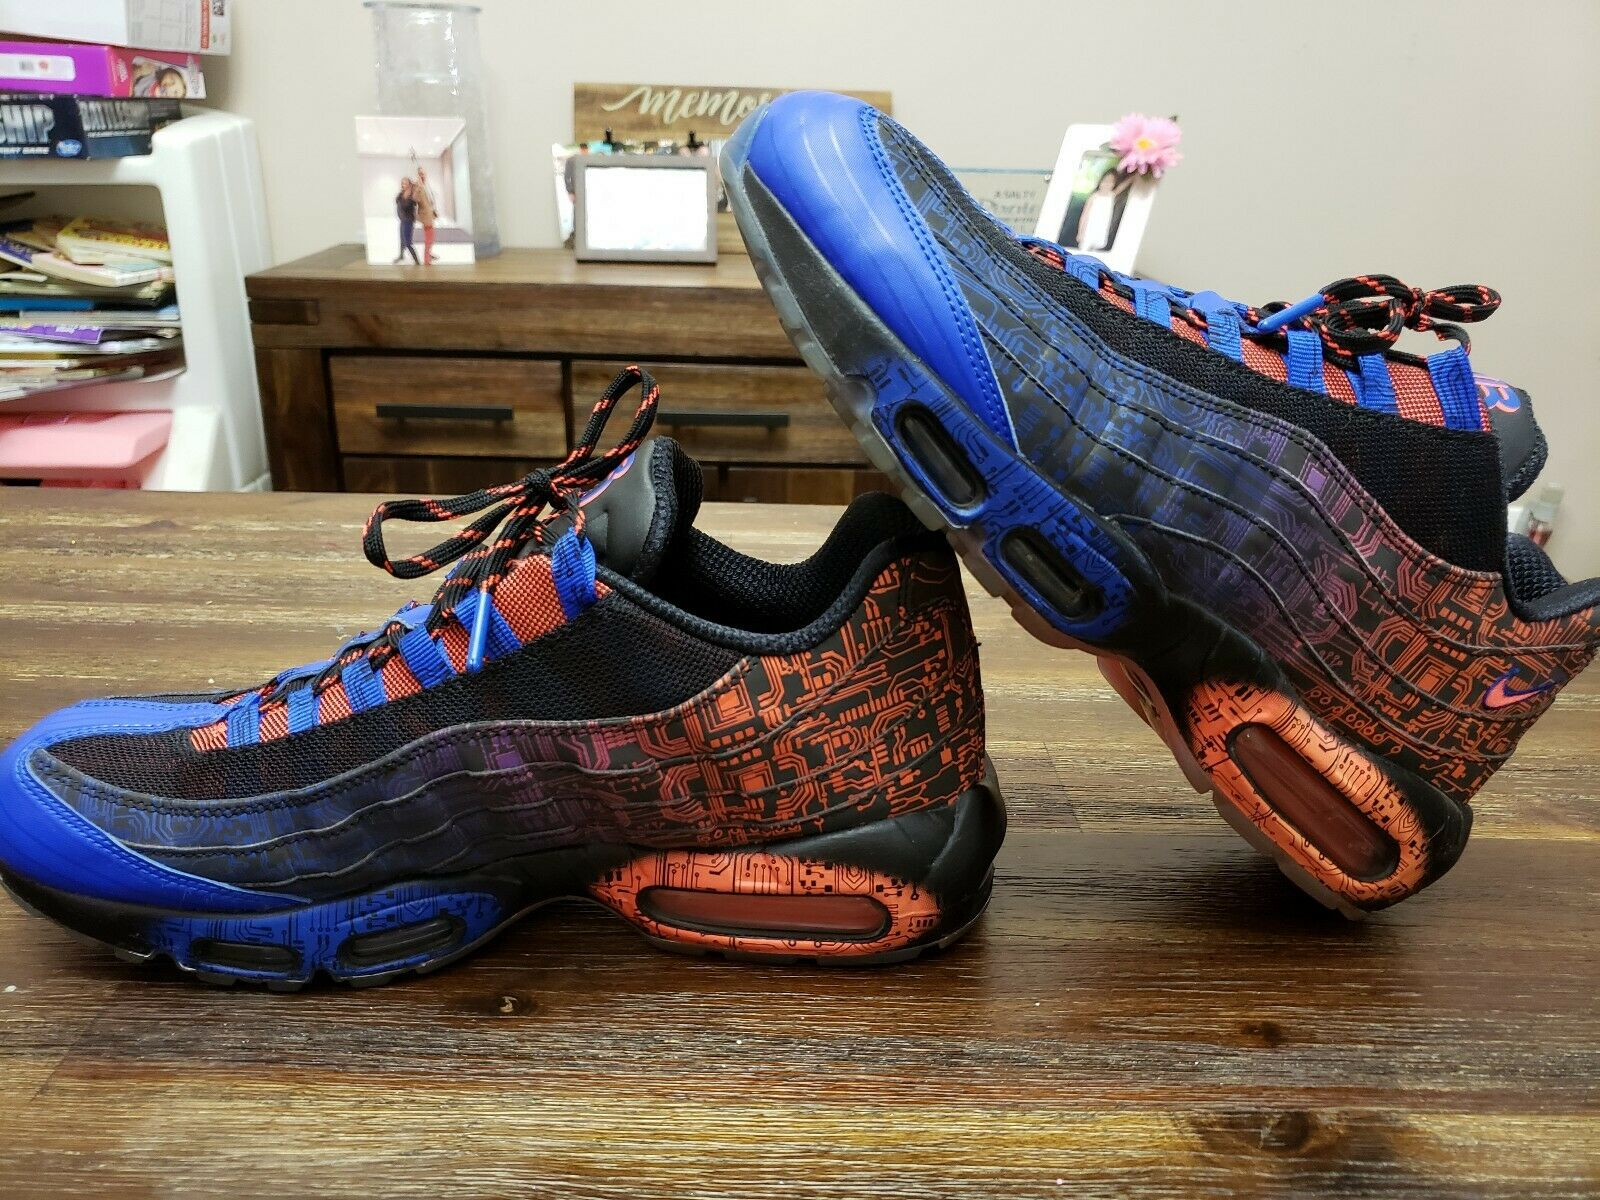 09368f0d66583 Nike Max 95 Doernbecher 15th Anniversary edition, Size 12. 839165-064 Air  ncarks1300-Athletic Shoes